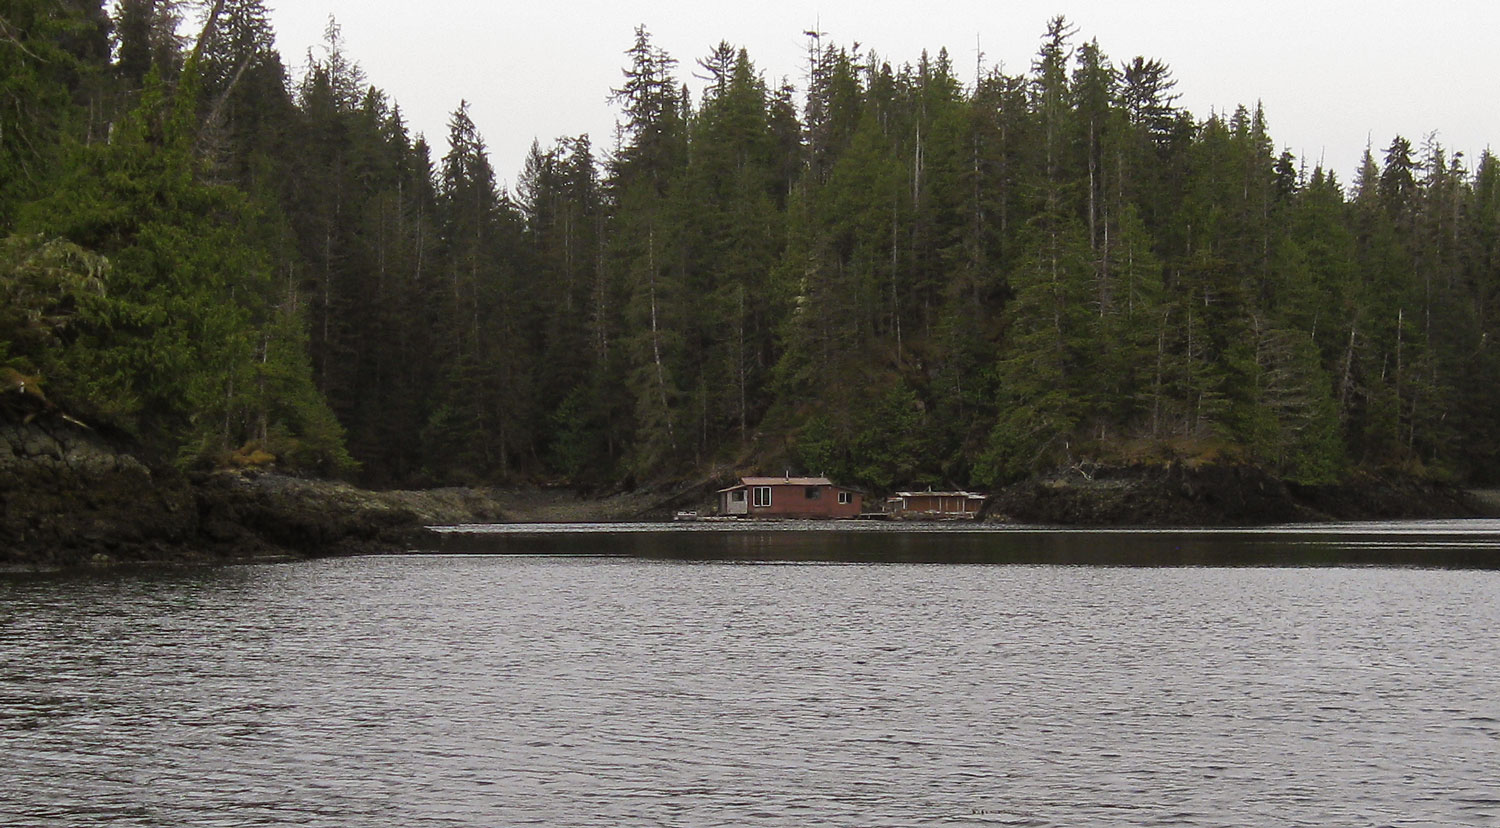 Floathouse kit: This furnished floathouse is listed with a truck (in town) and a boat  HERE .